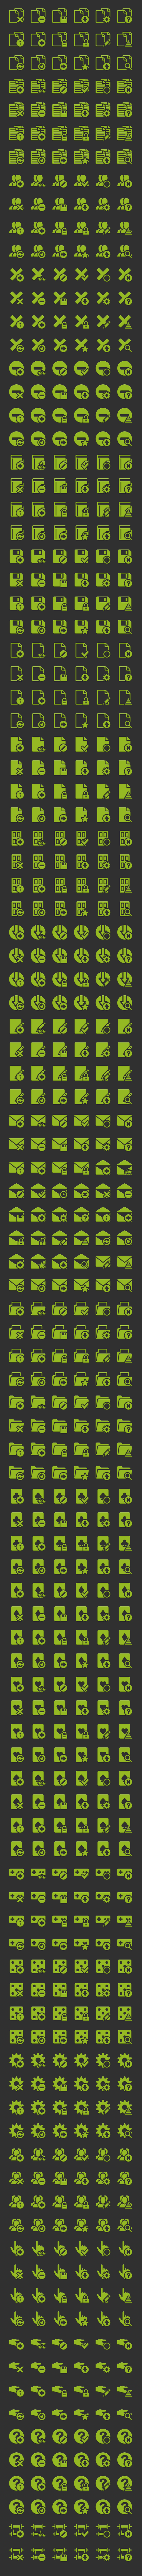 android icons general addons